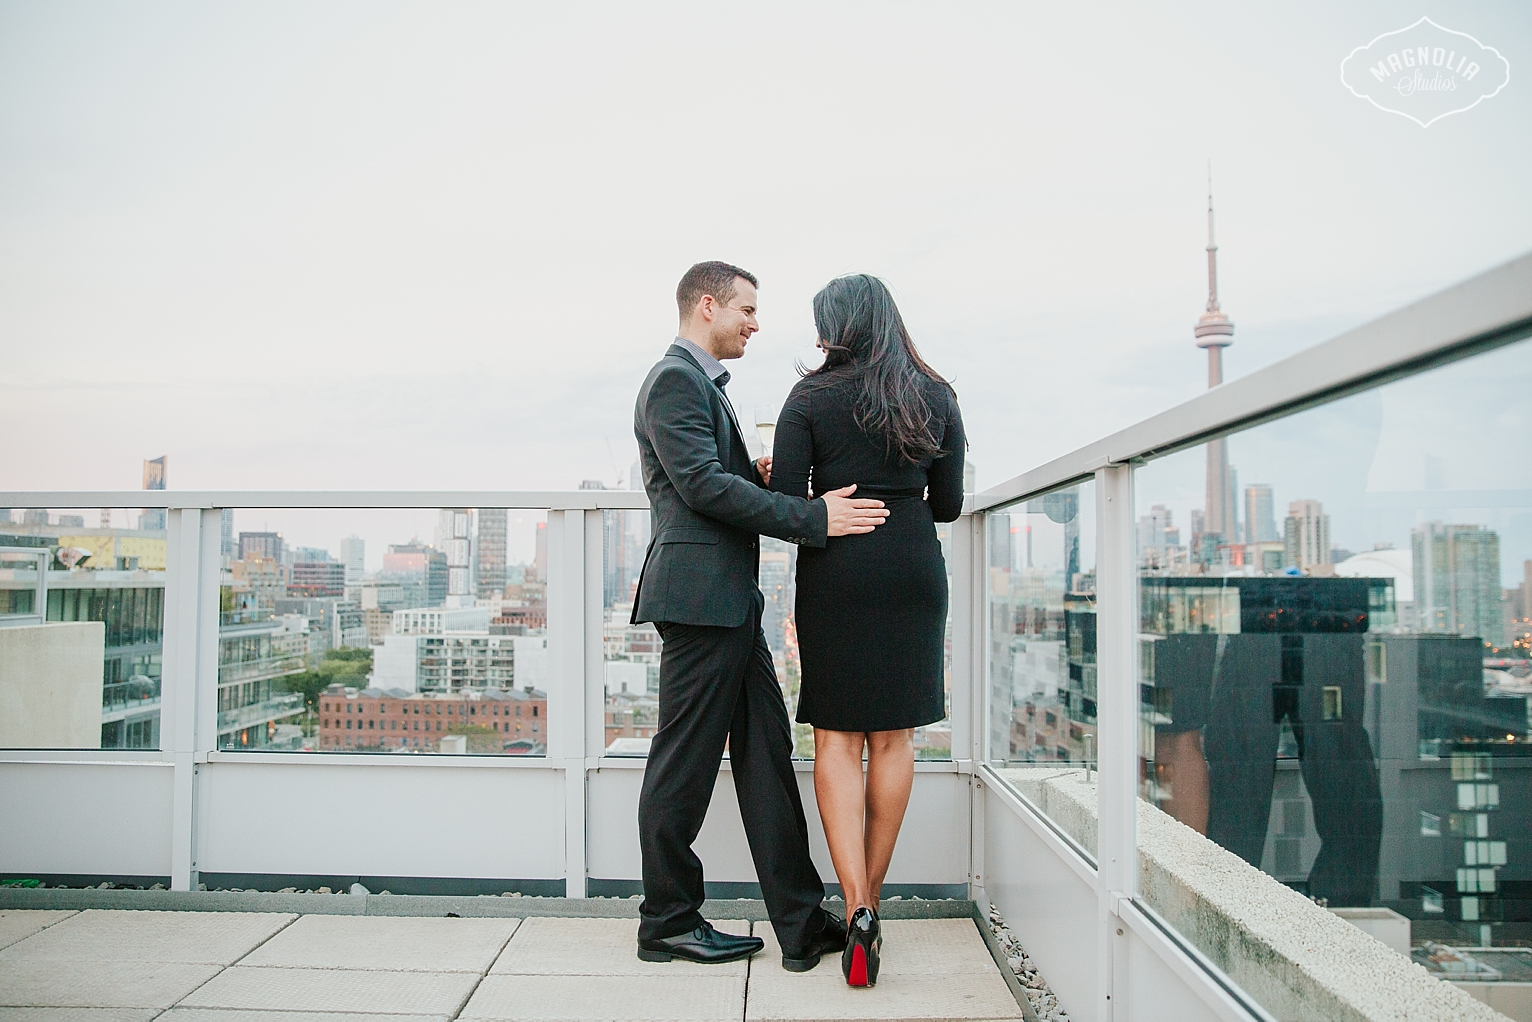 Toronto Rooftop Engagement Photography